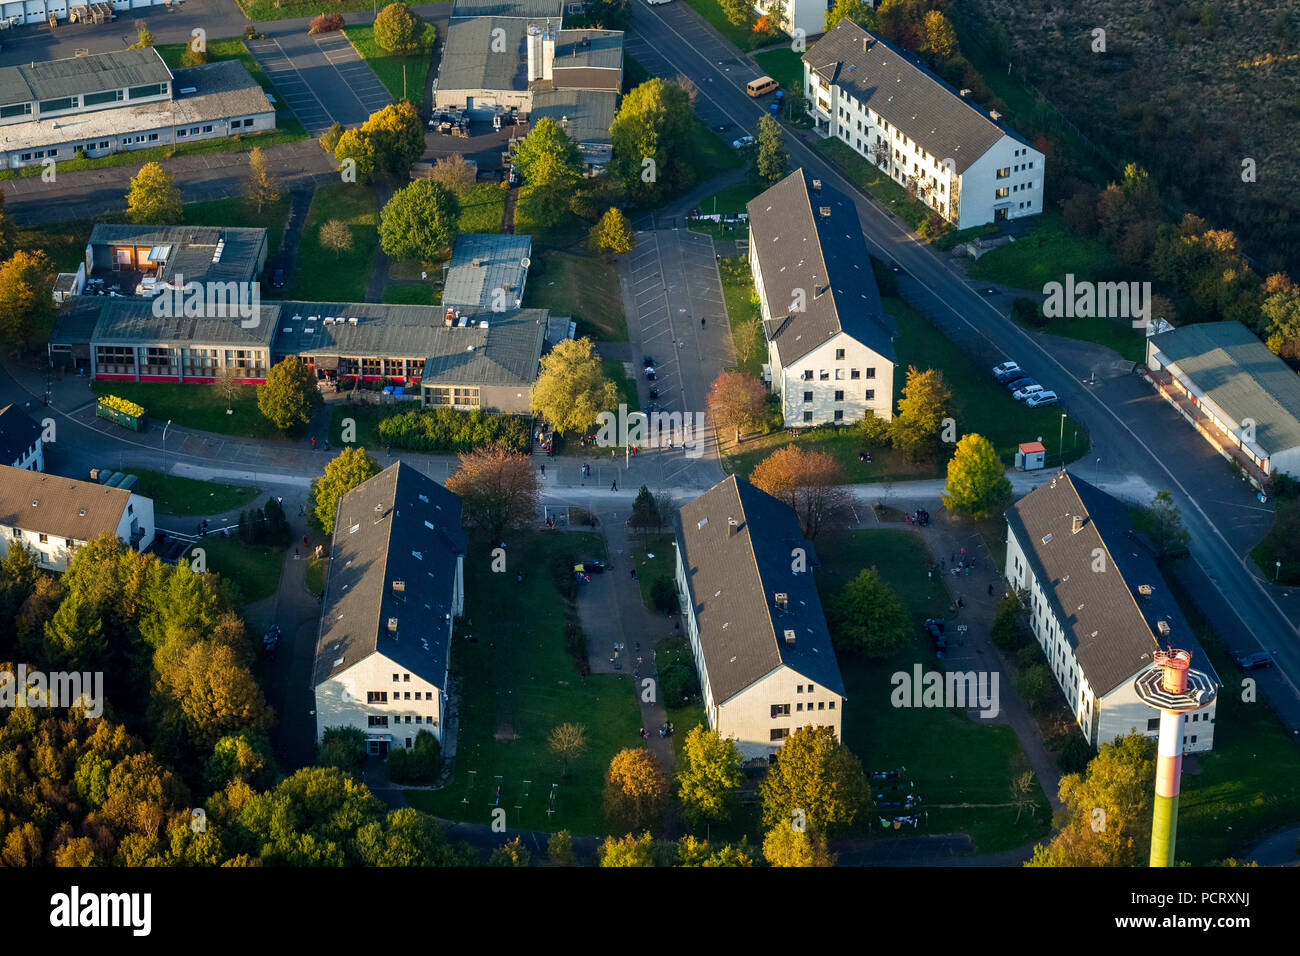 Refugee center in the former Siegerland barracks in Burbach, mistreatment of asylum seekers by the guard services, European Homecare, Burbach, Sauerland, North Rhine-Westphalia, Germany - Stock Image